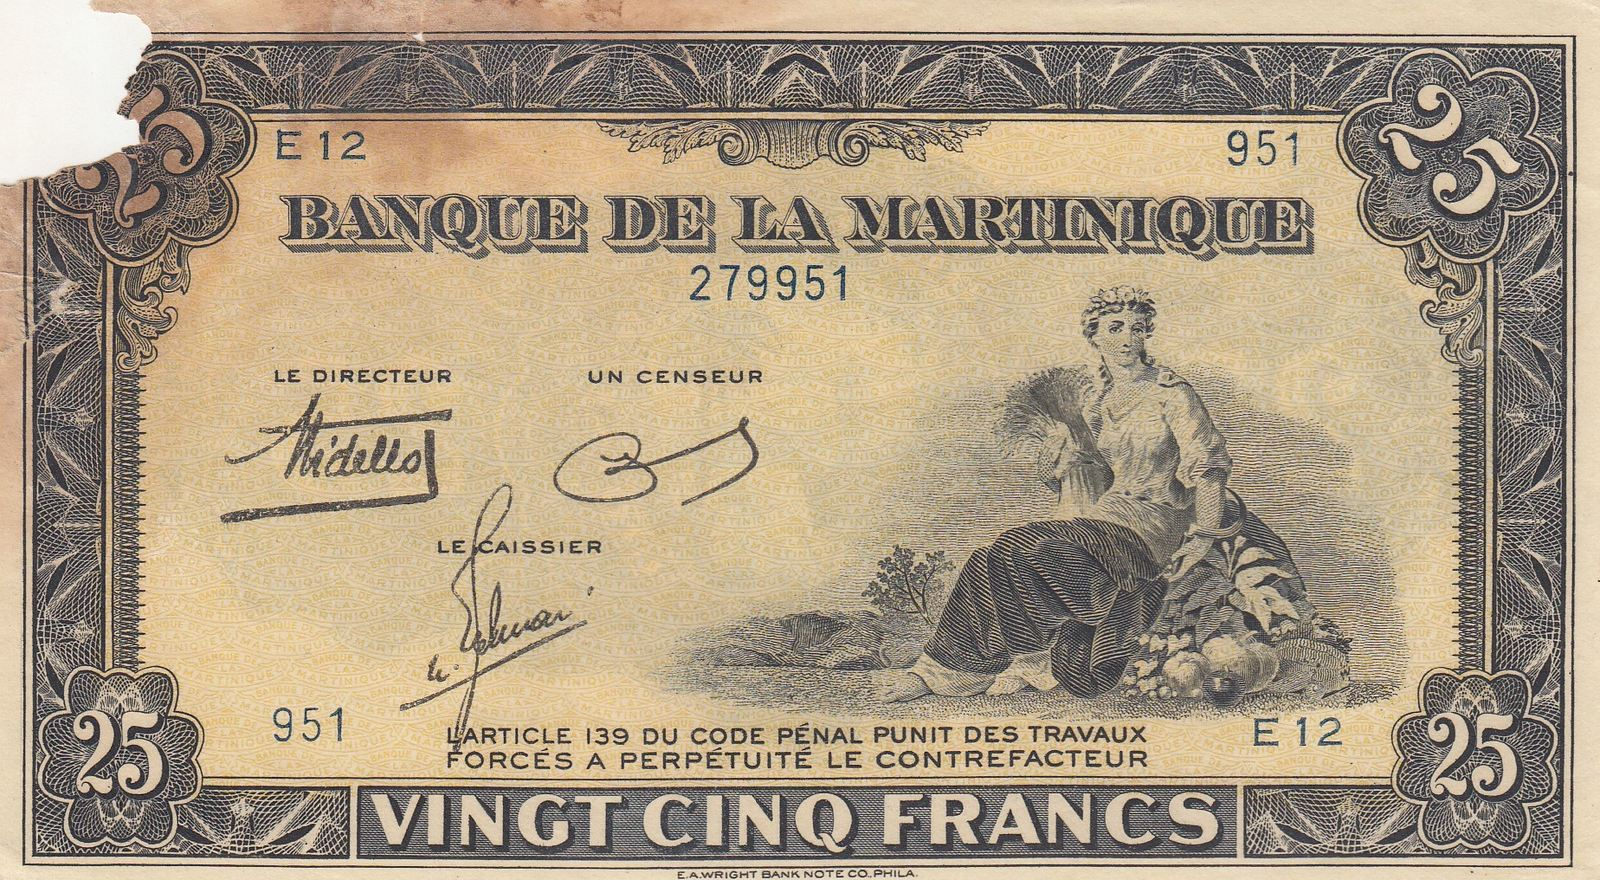 Martinique 25 Francs Nd1943 Serial E12 Woman Seated With Fruits